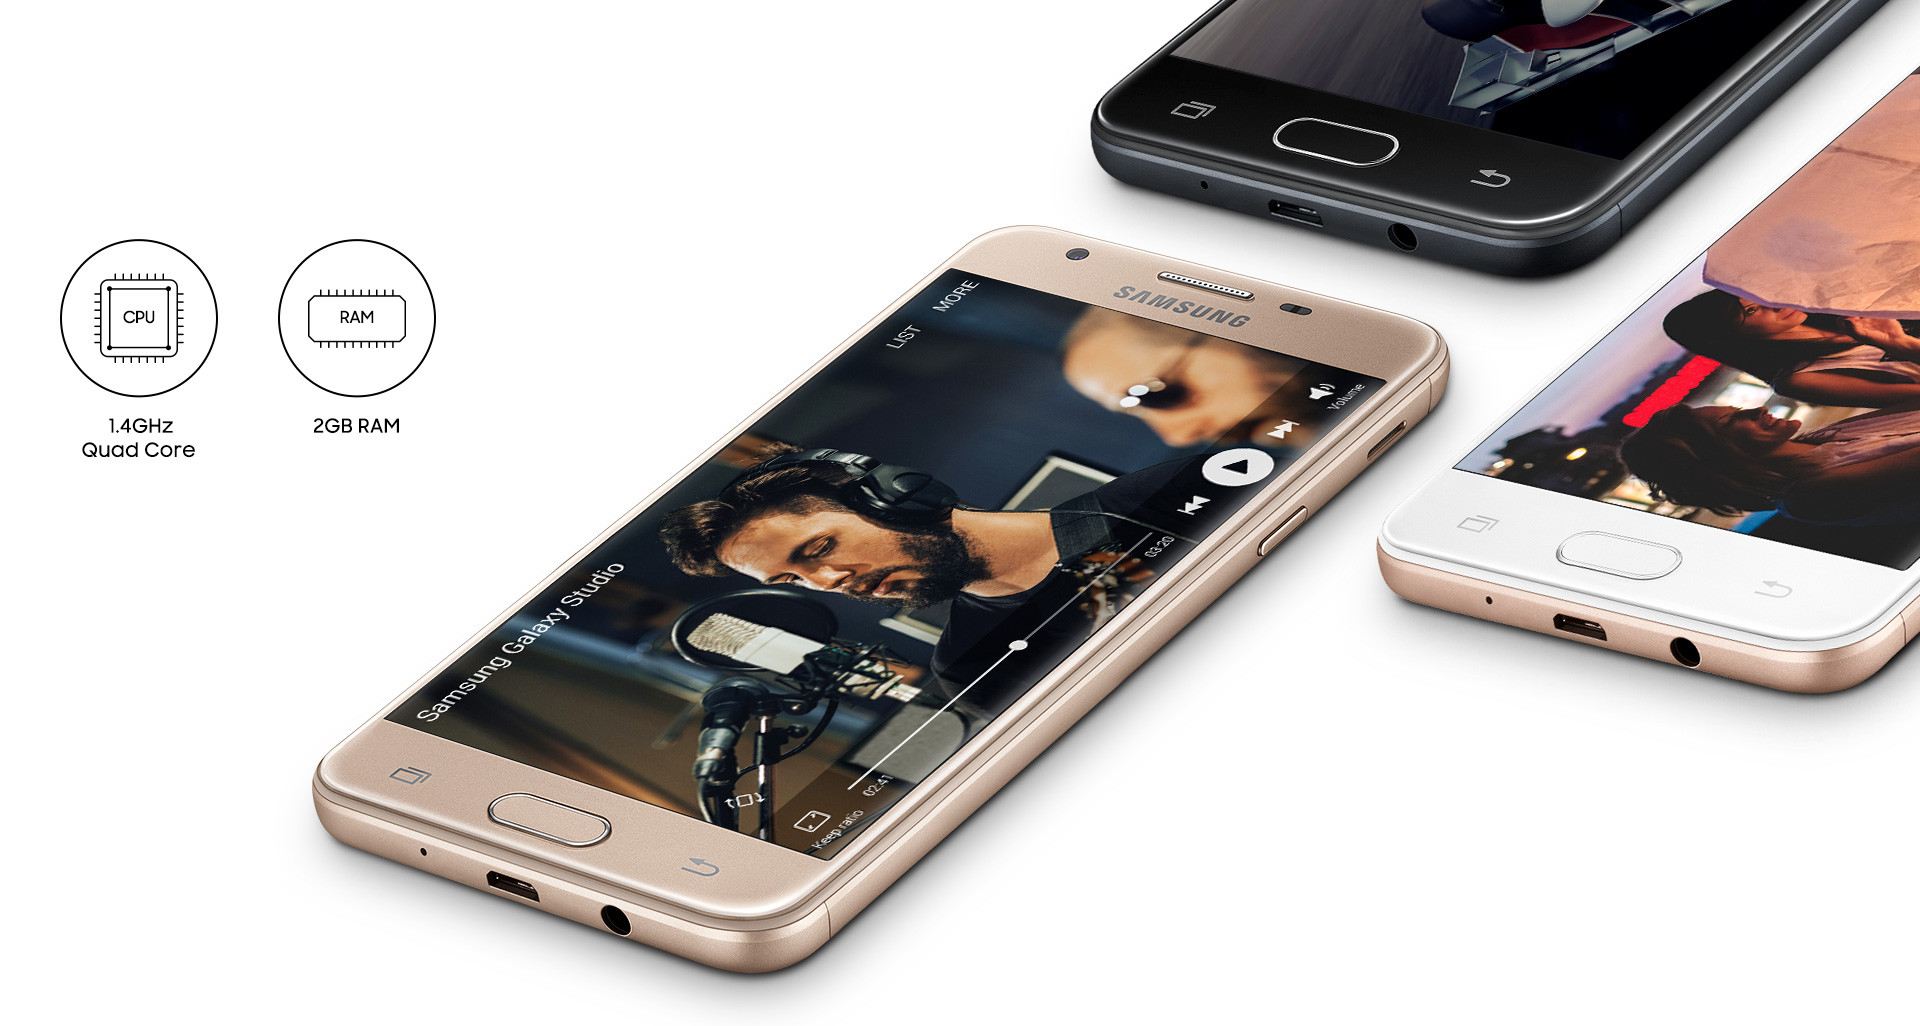 Samsung galaxy j5 prime with fast processor